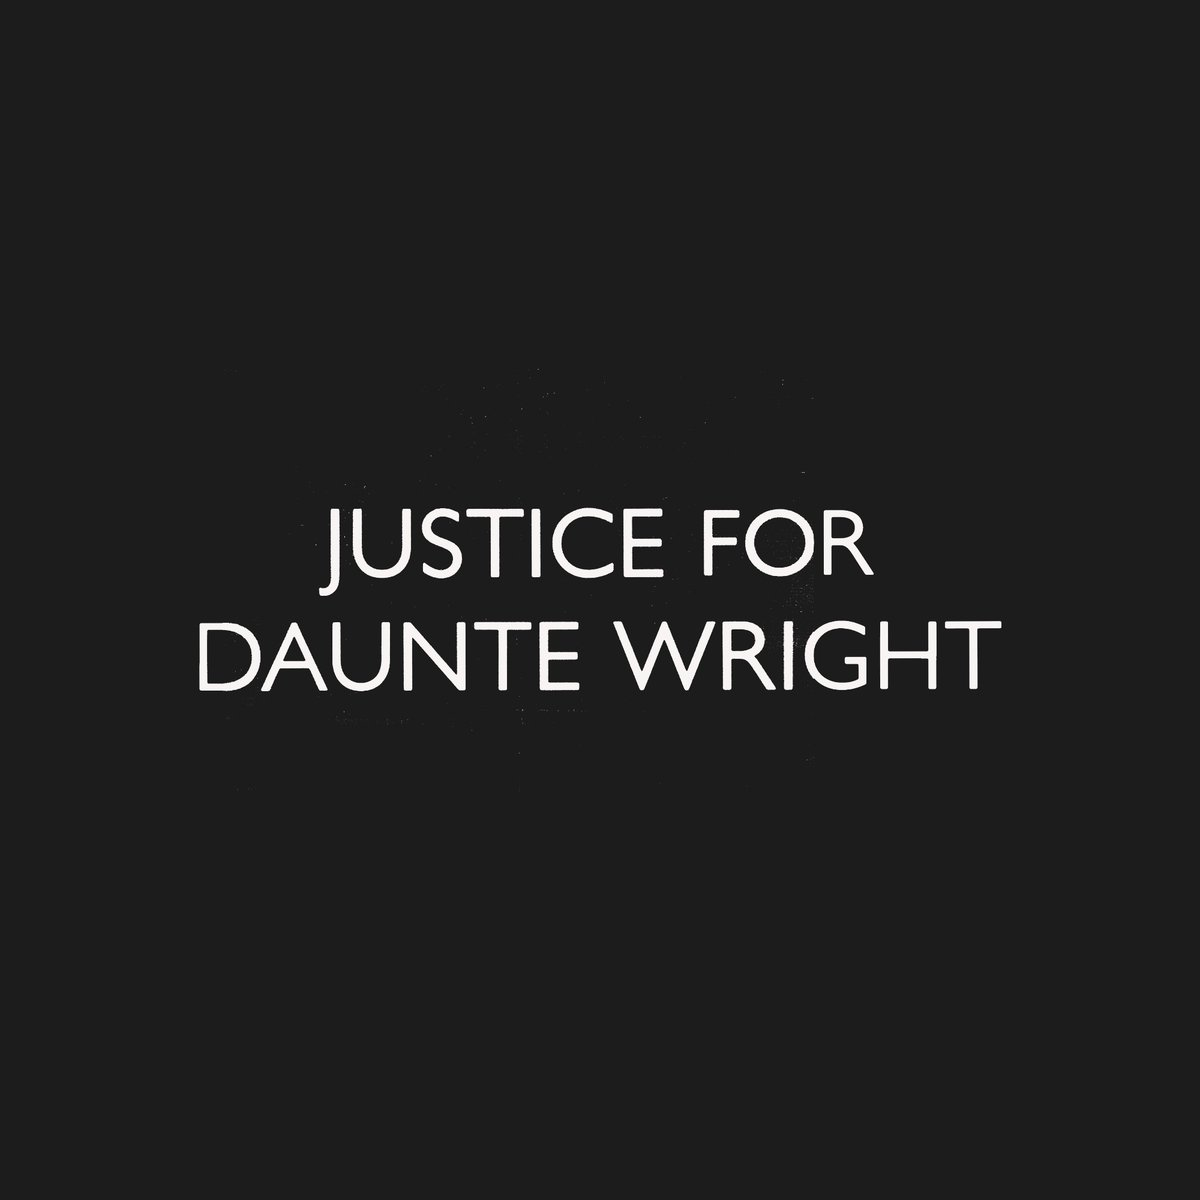 We are devastated by yet another senseless death in our community. There can be no end to raising our voices for justice, today and every day.